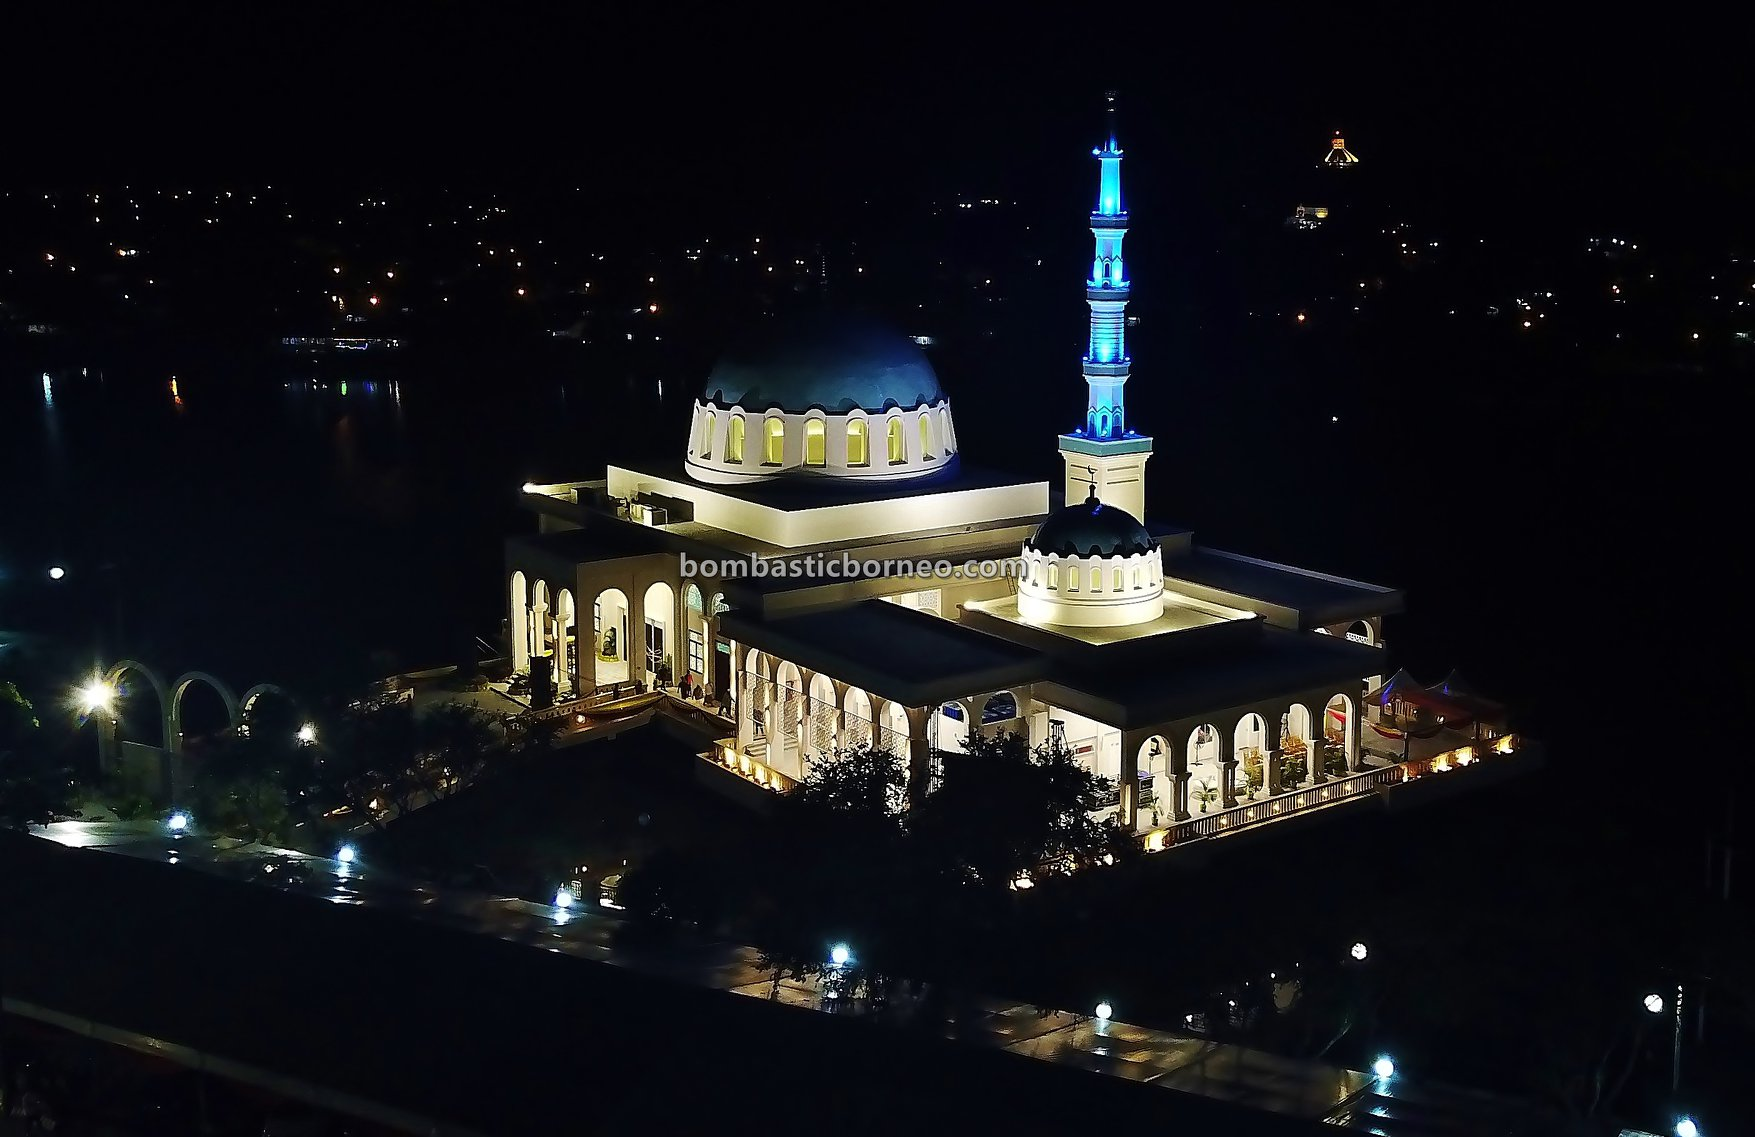 Masjid Terapung, Masjid India Bandar Kuching, India Mosque, Indian Muslim, destination, culture, Kuching Waterfront, Sarawak river, Obyek Wisata, Tourism, travel guide, Cross Border, 古晋水上回教堂, 砂拉越河滨公园, 马来西亚旅游景点,